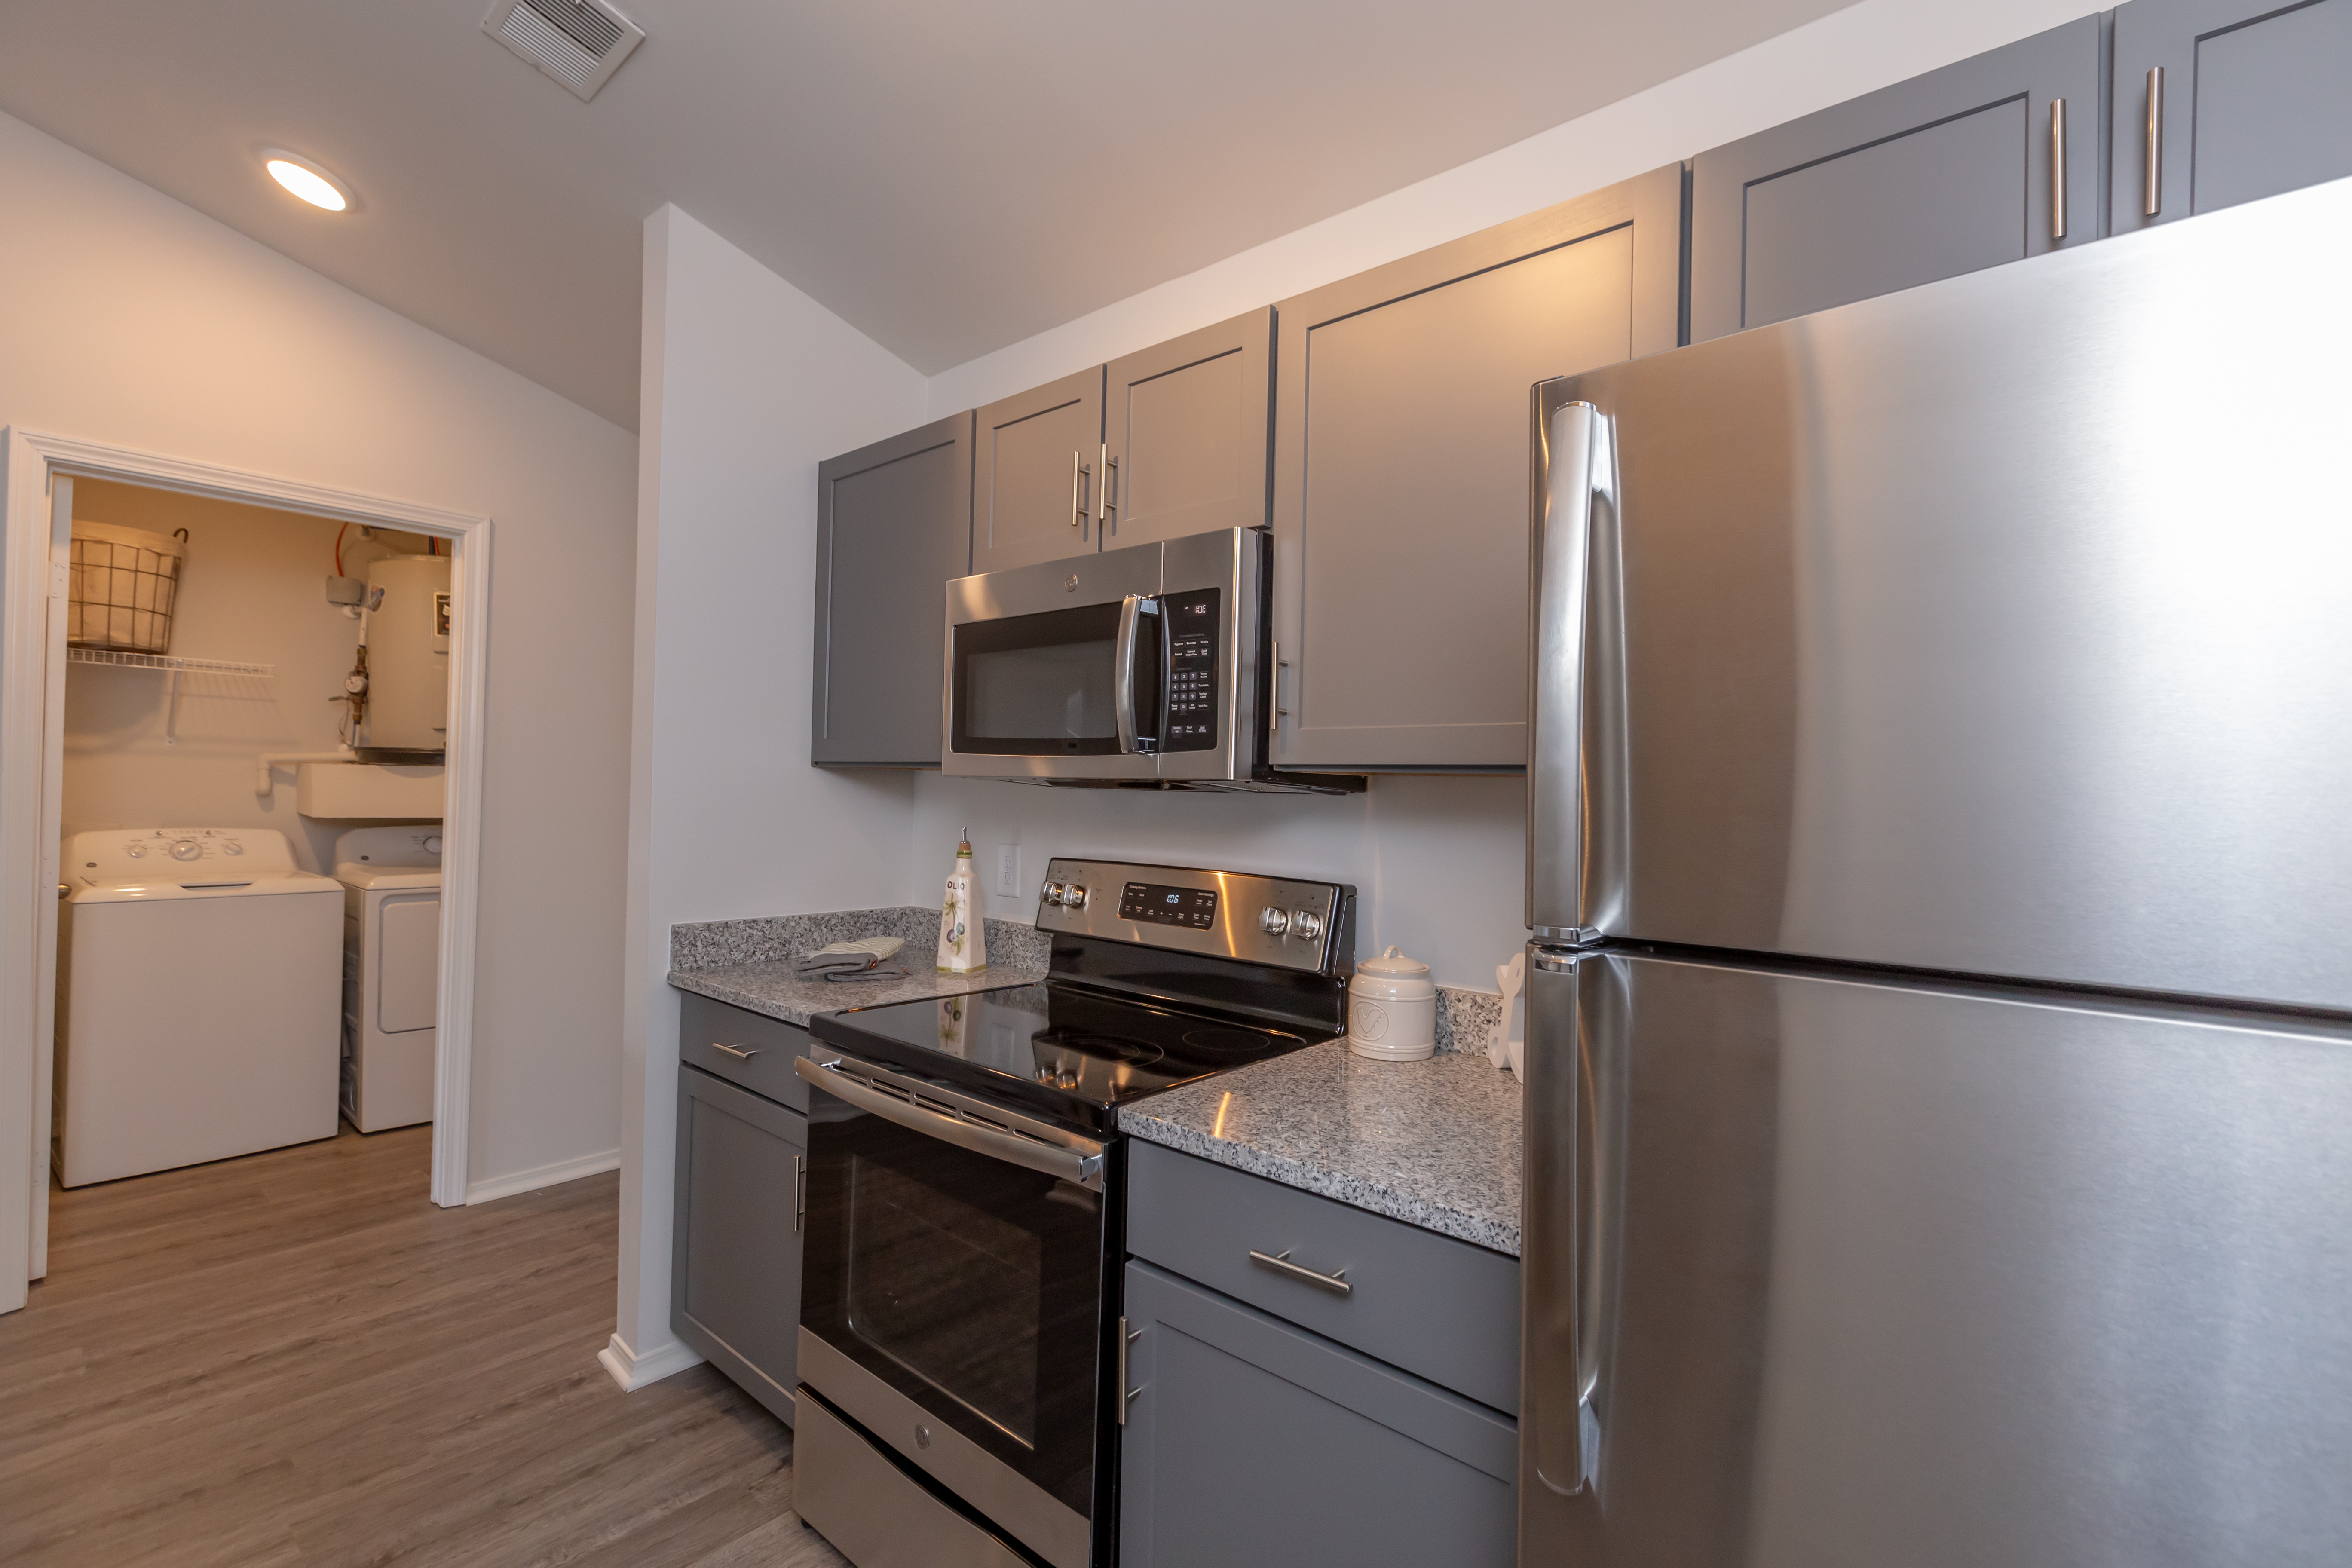 Enjoy A Full Size Washer And Dryer In-home At New Providence Park In Wilmington, NC